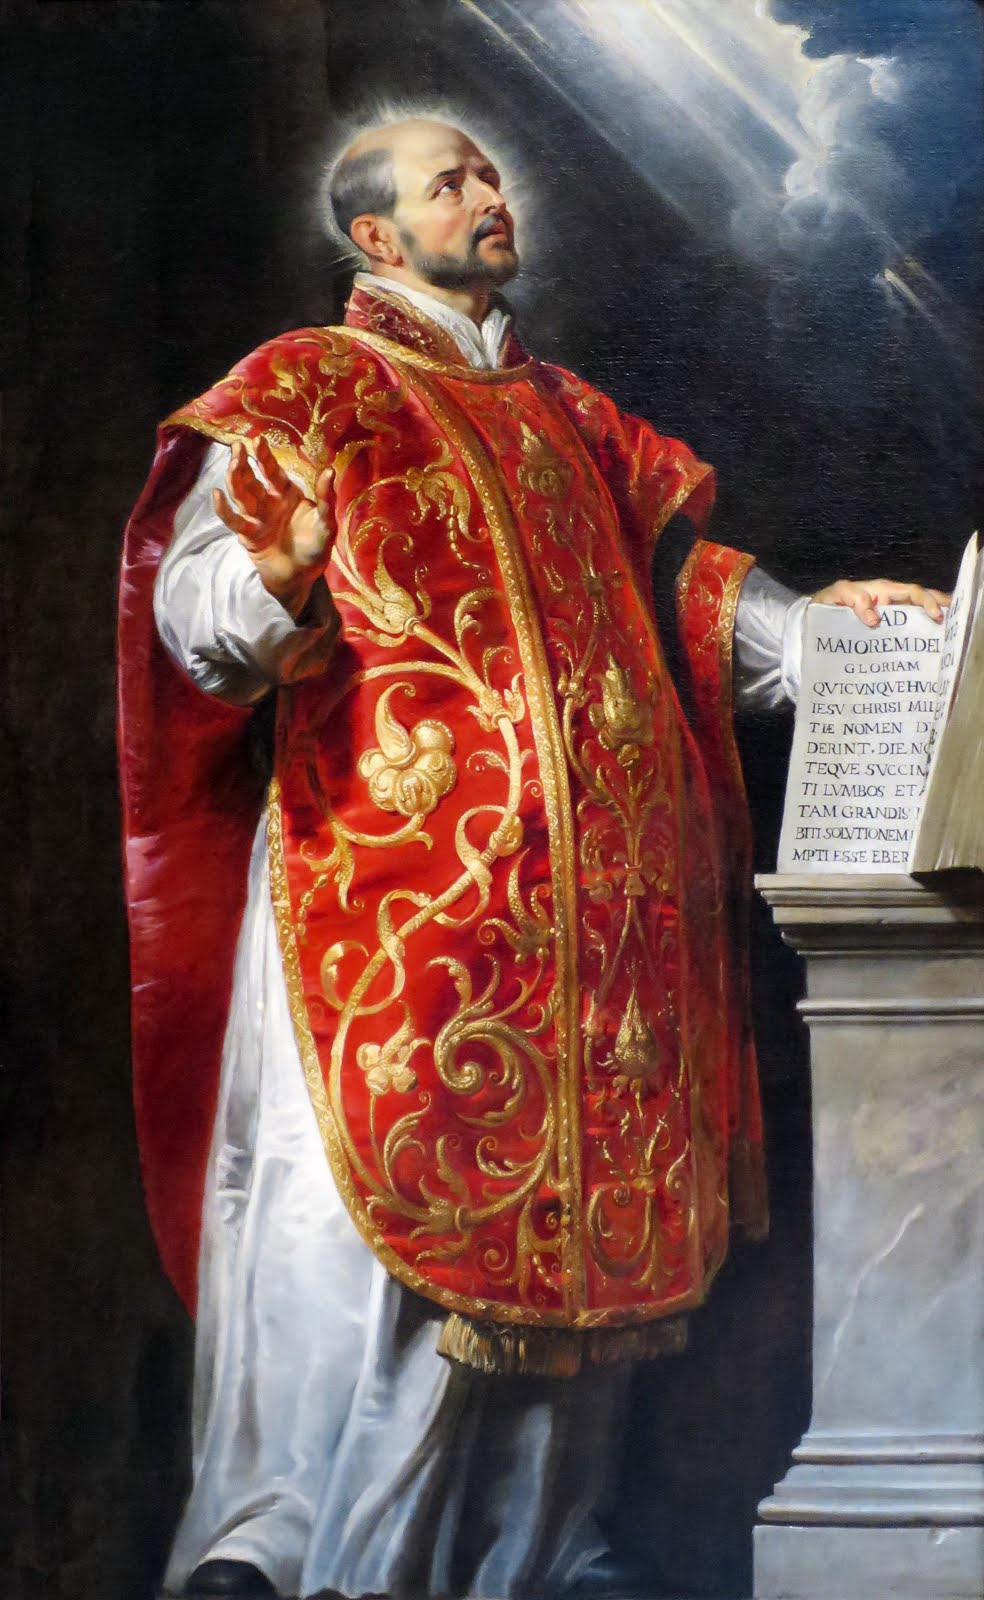 JULY 31 - ST IGNATIUS OF LOYOLA